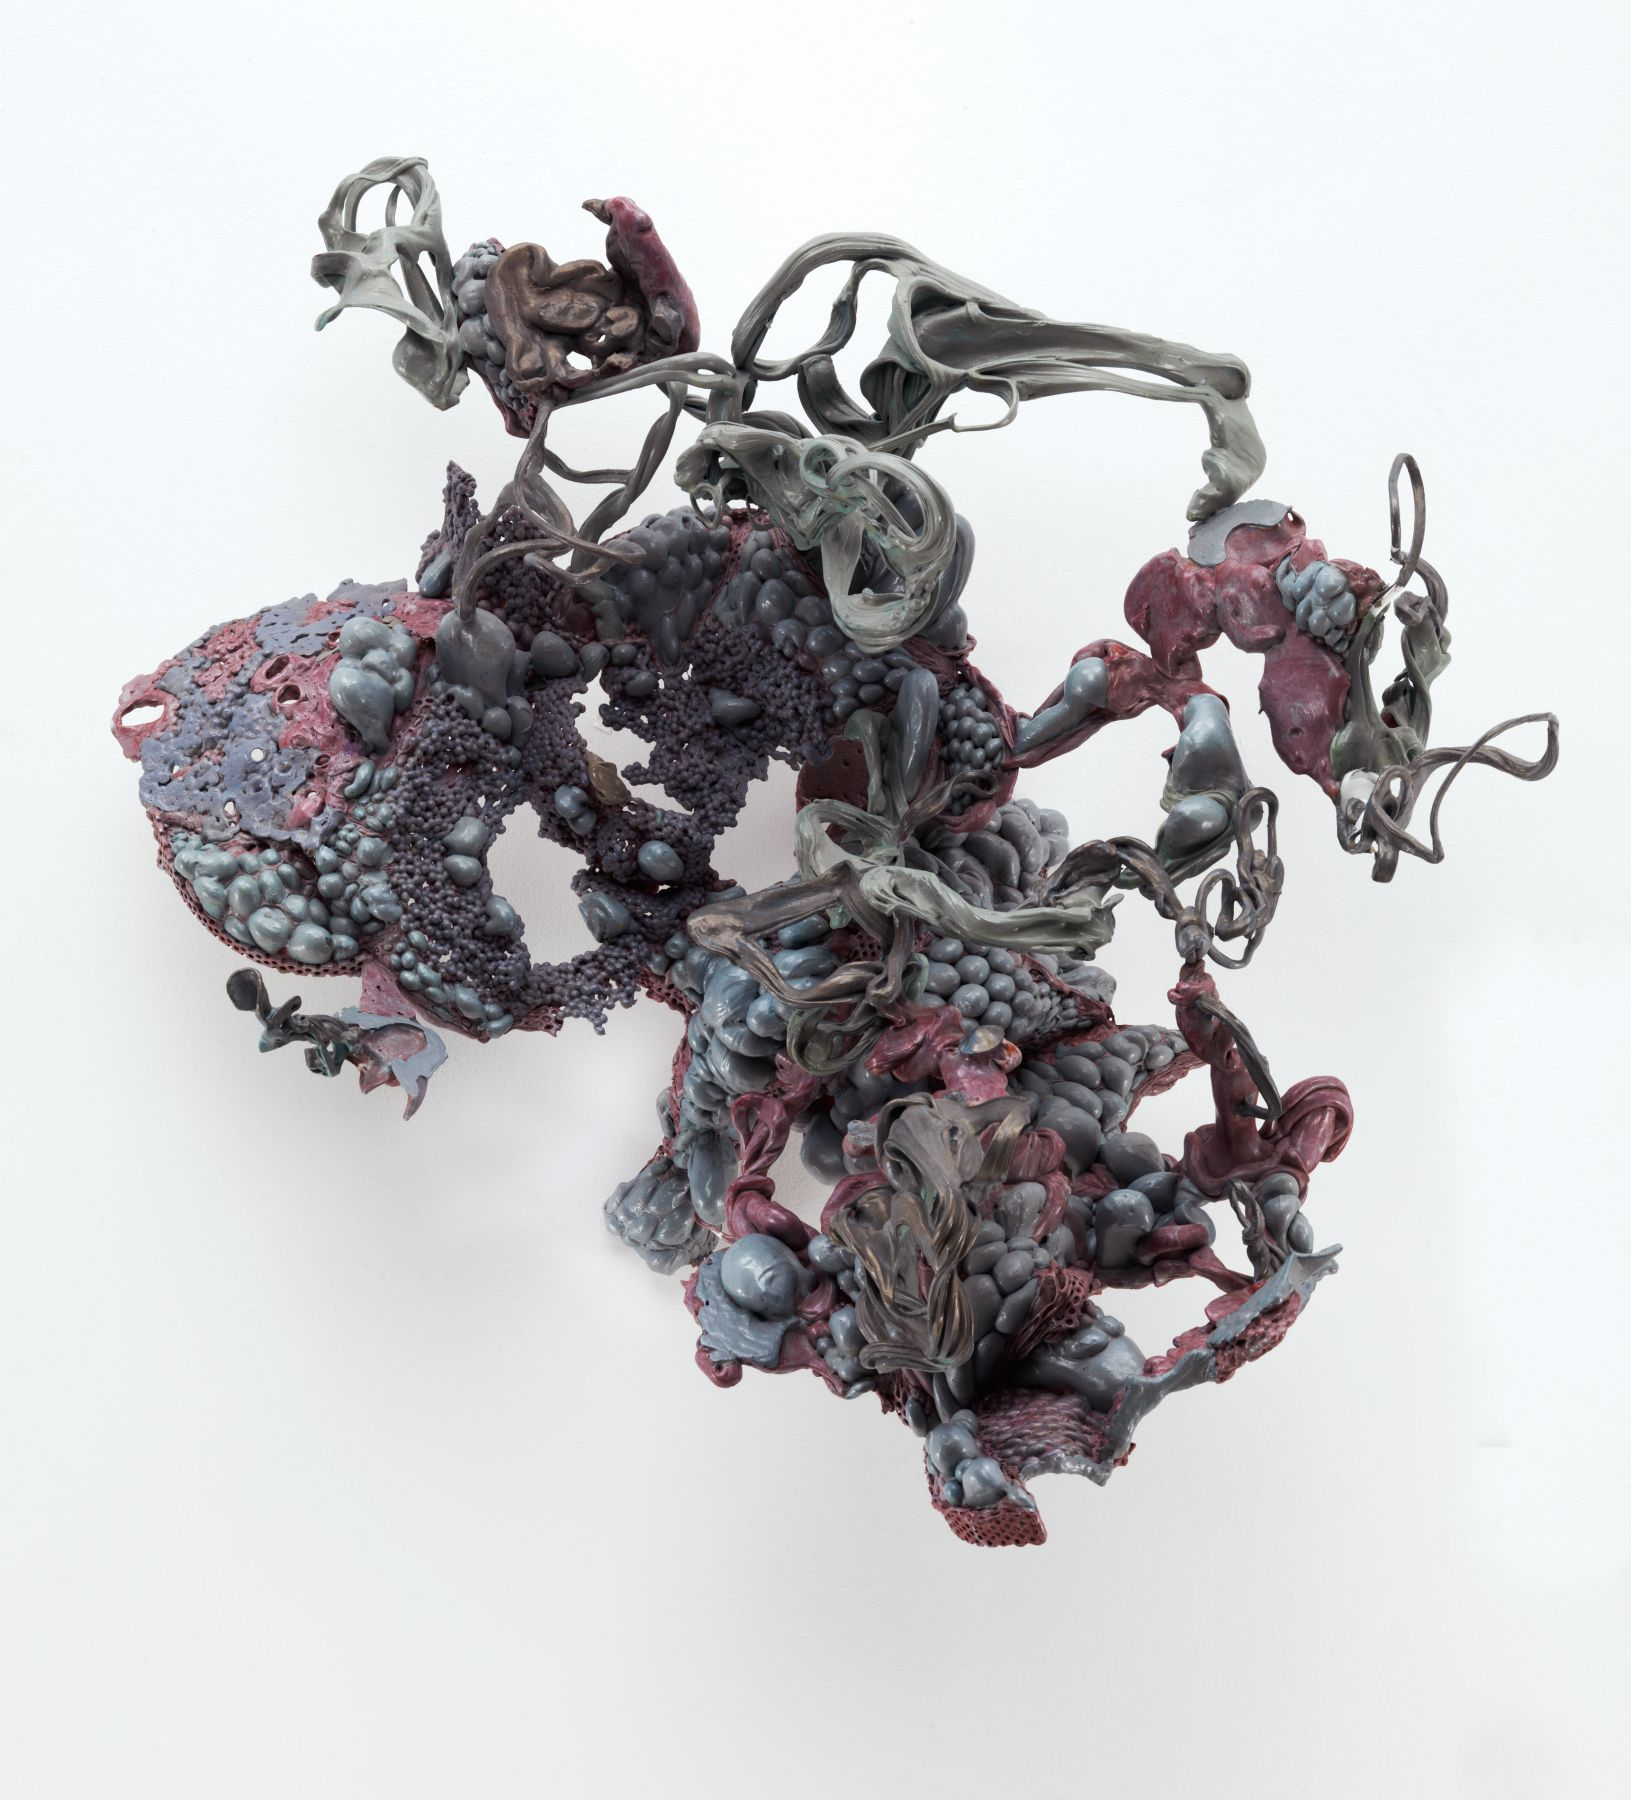 Untitled, 2002, Thermoplastic and acrylic paint